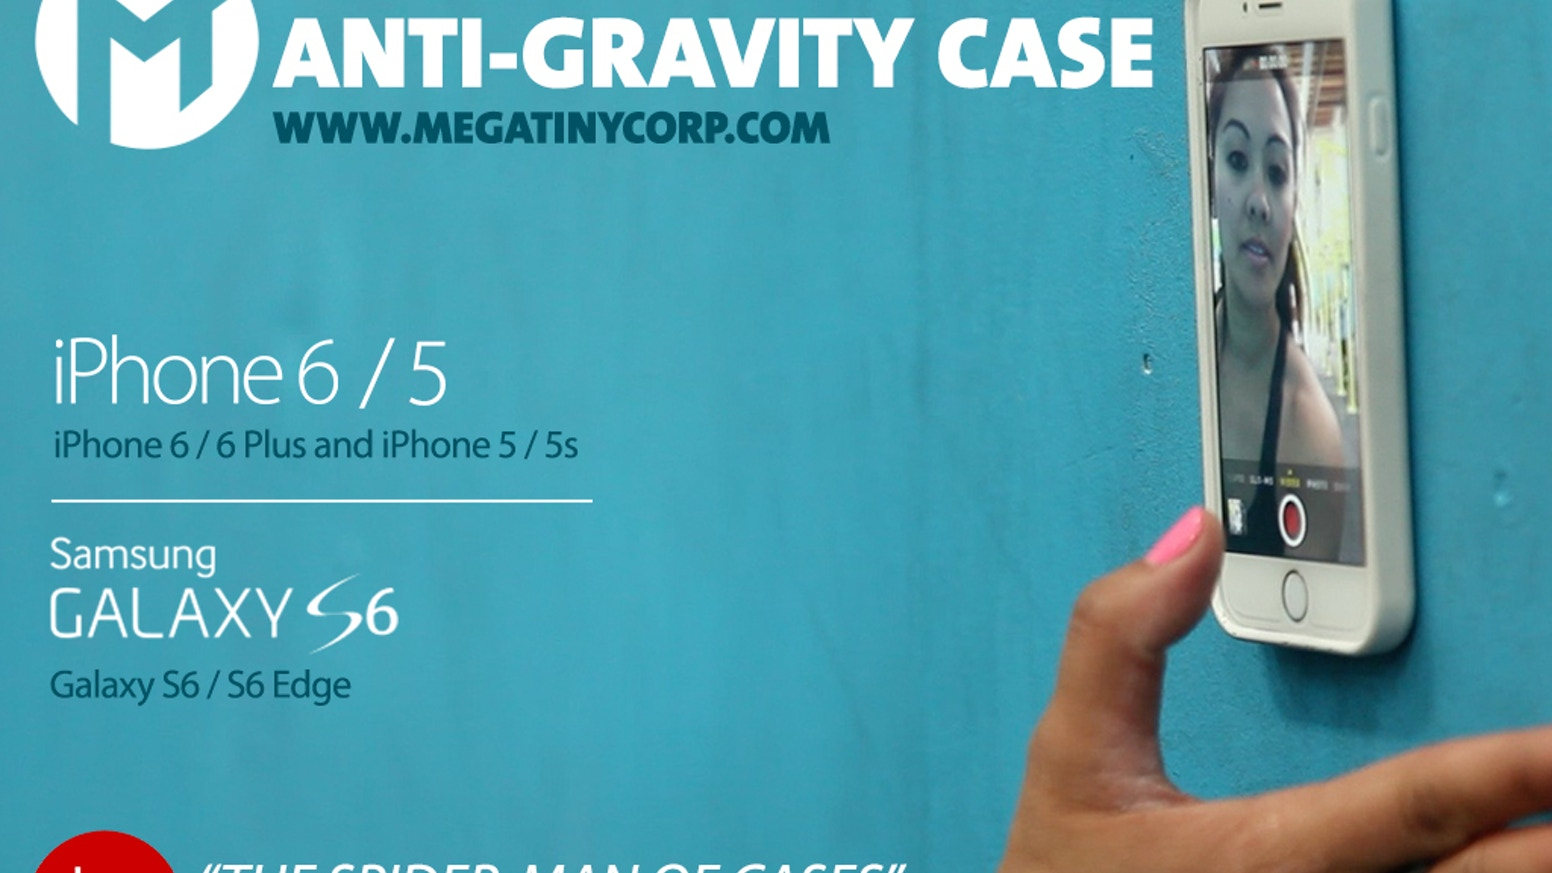 A unique case that allows you to stick your phone to most smooth, flat surfaces without being sticky!